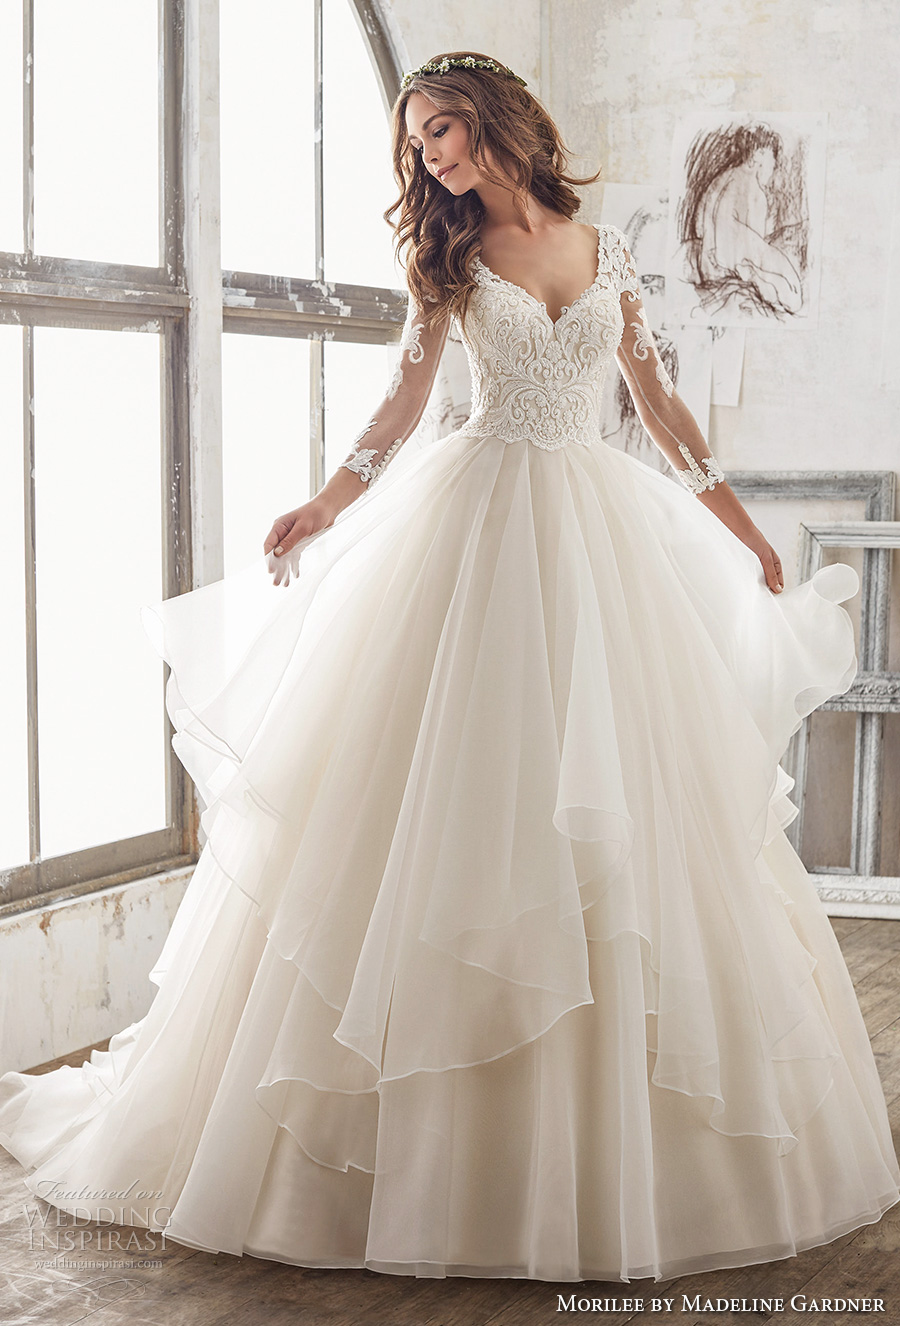 Morilee Spring 2017 Bridal Three Quarter Sleeves Sweetheart Neckline Heavily Embellished Bodice Layer Skirt Princess Ball